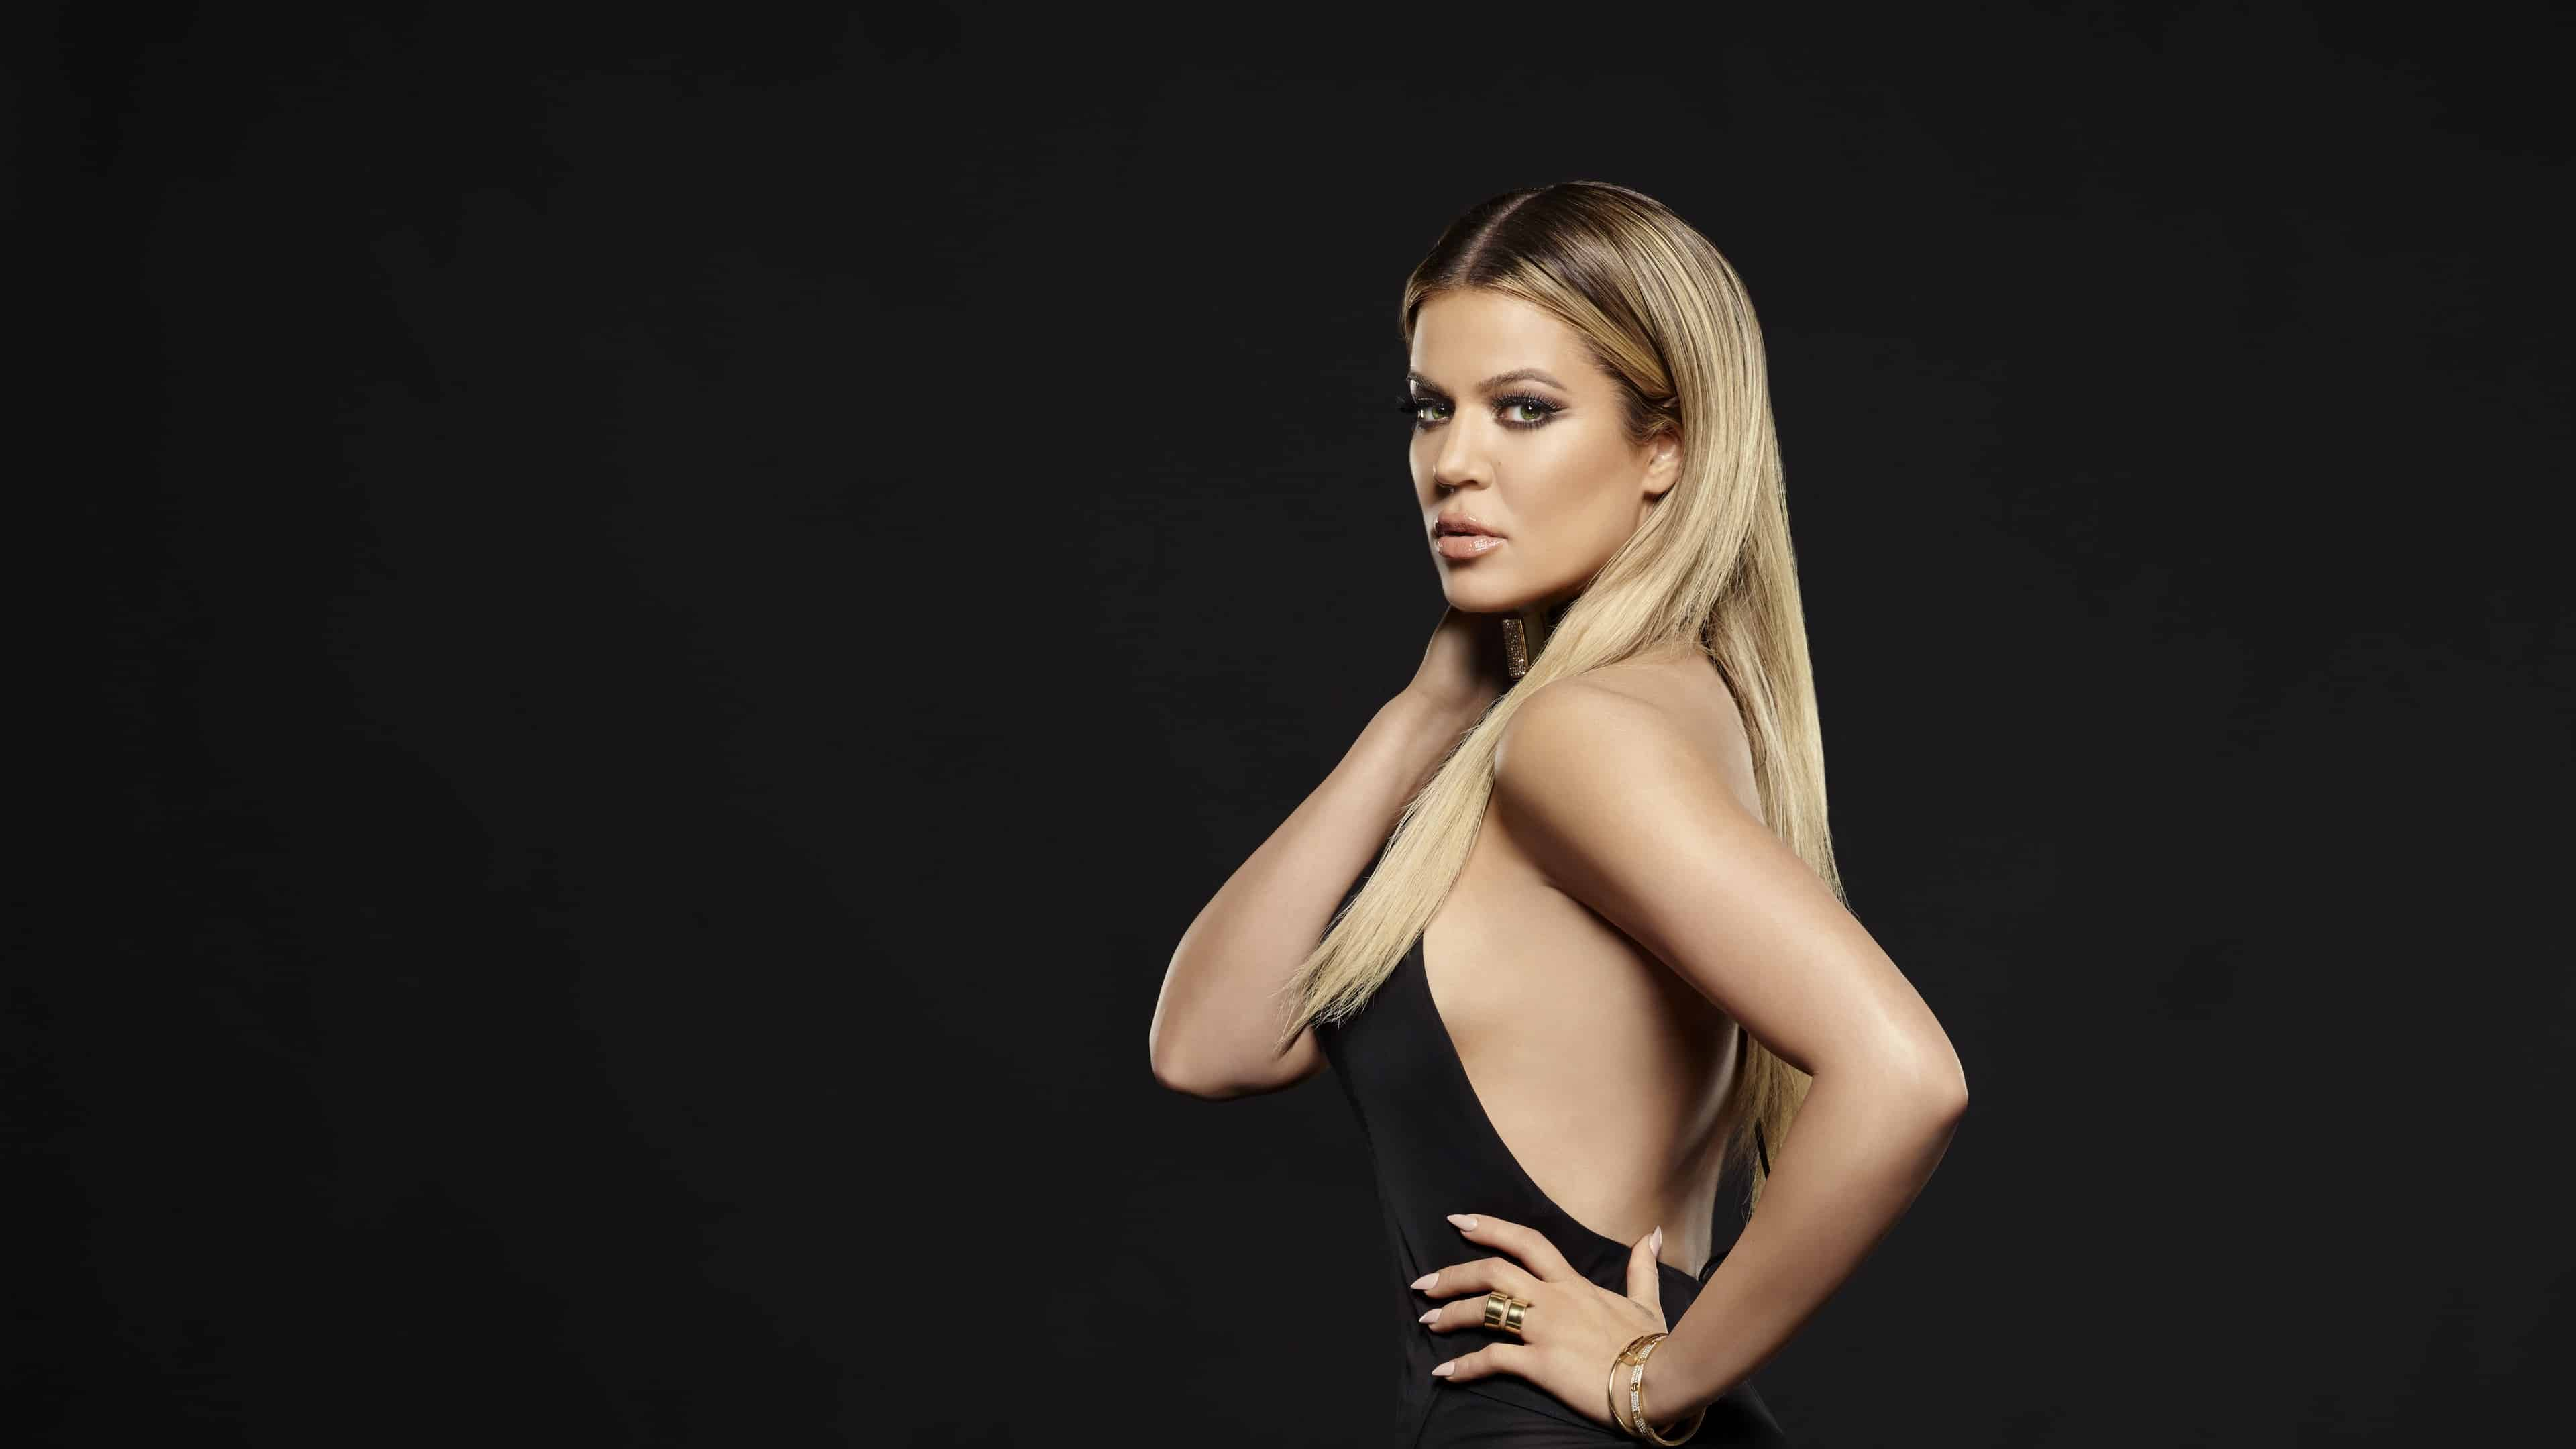 keeping up with the kardashians khloe kardashian uhd 4k wallpaper